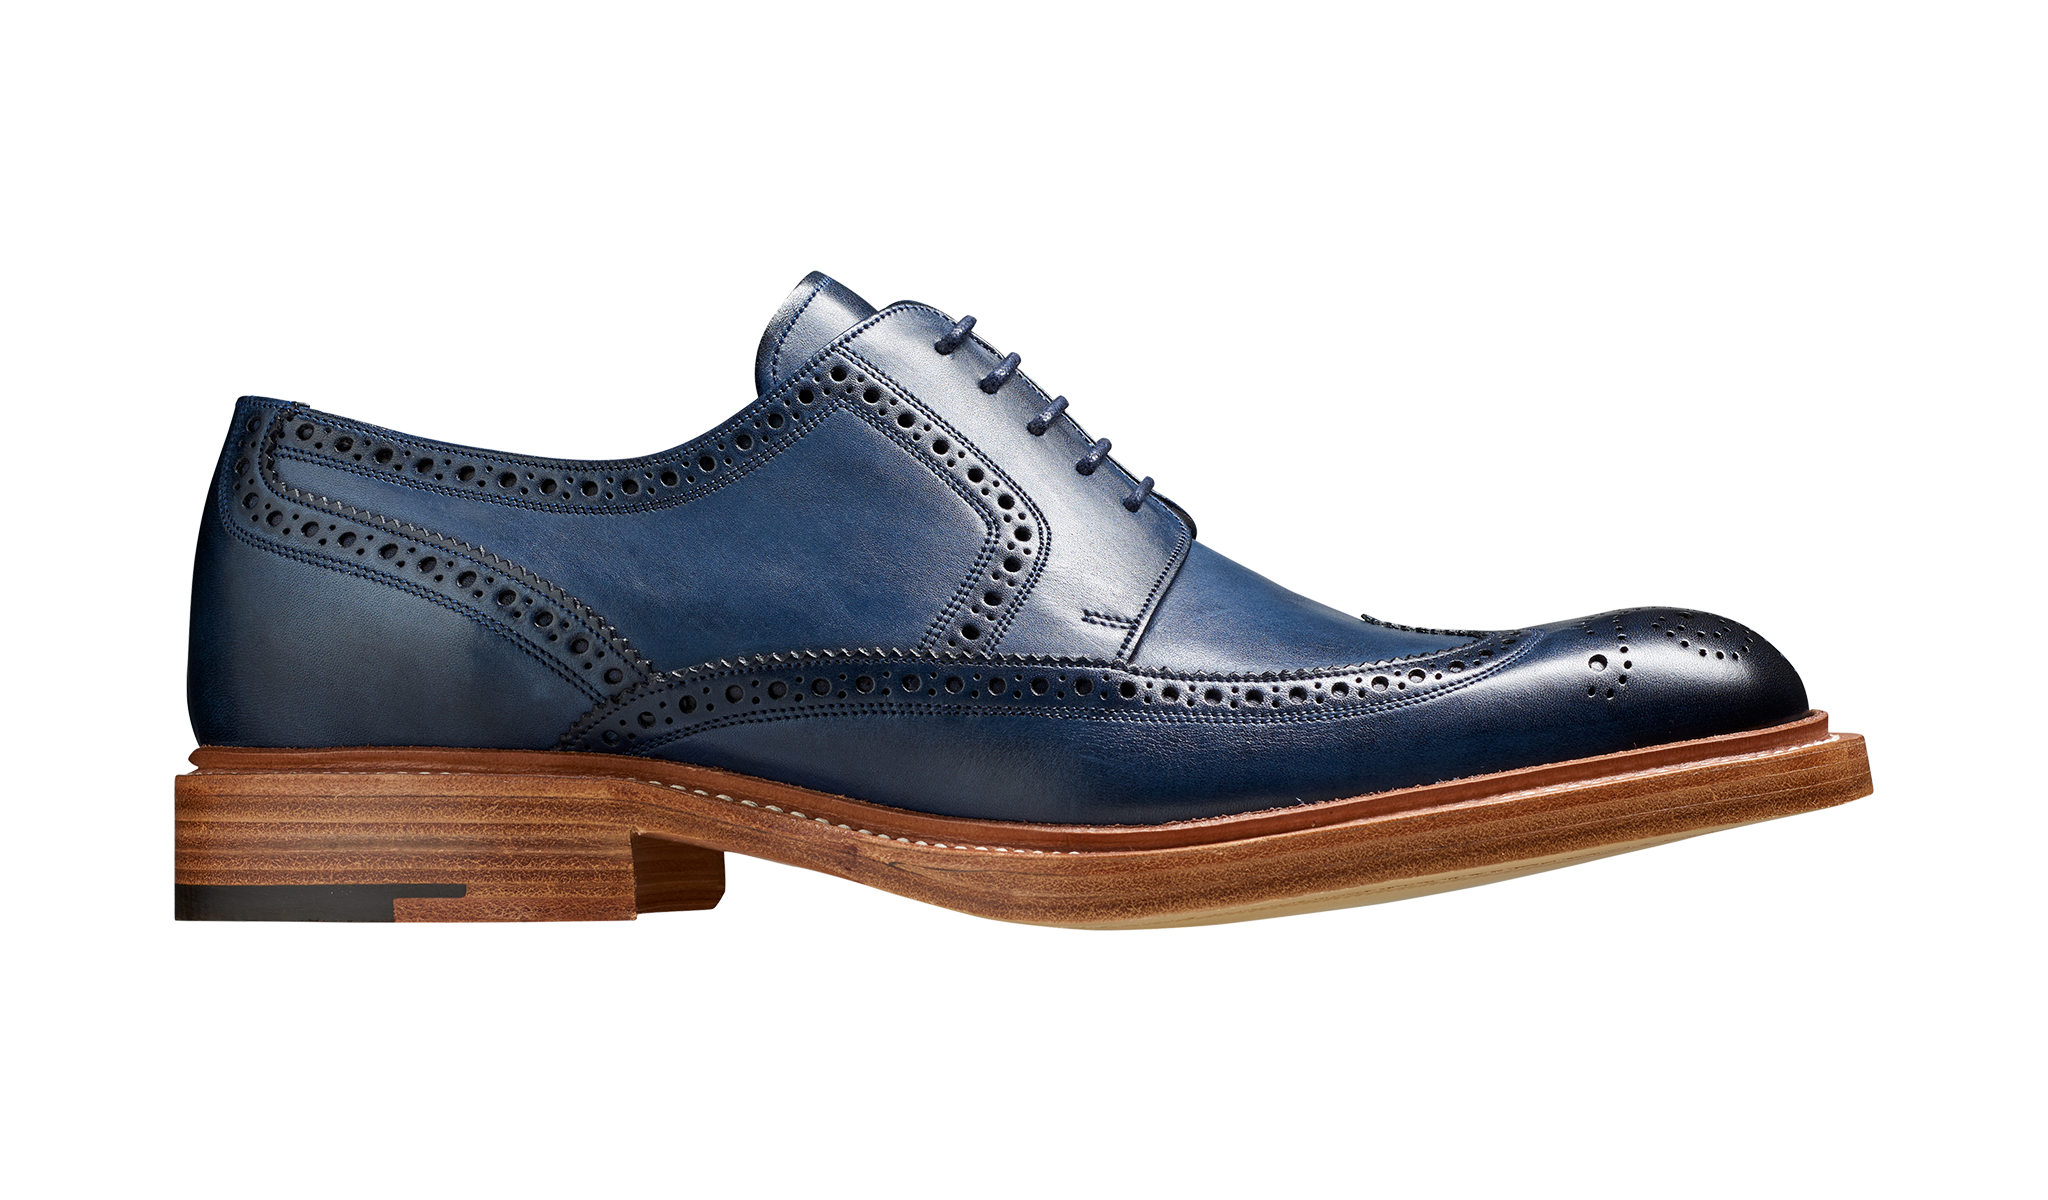 d96df3d47760c Bailey - Navy Hand Painted | Barker Shoes UK